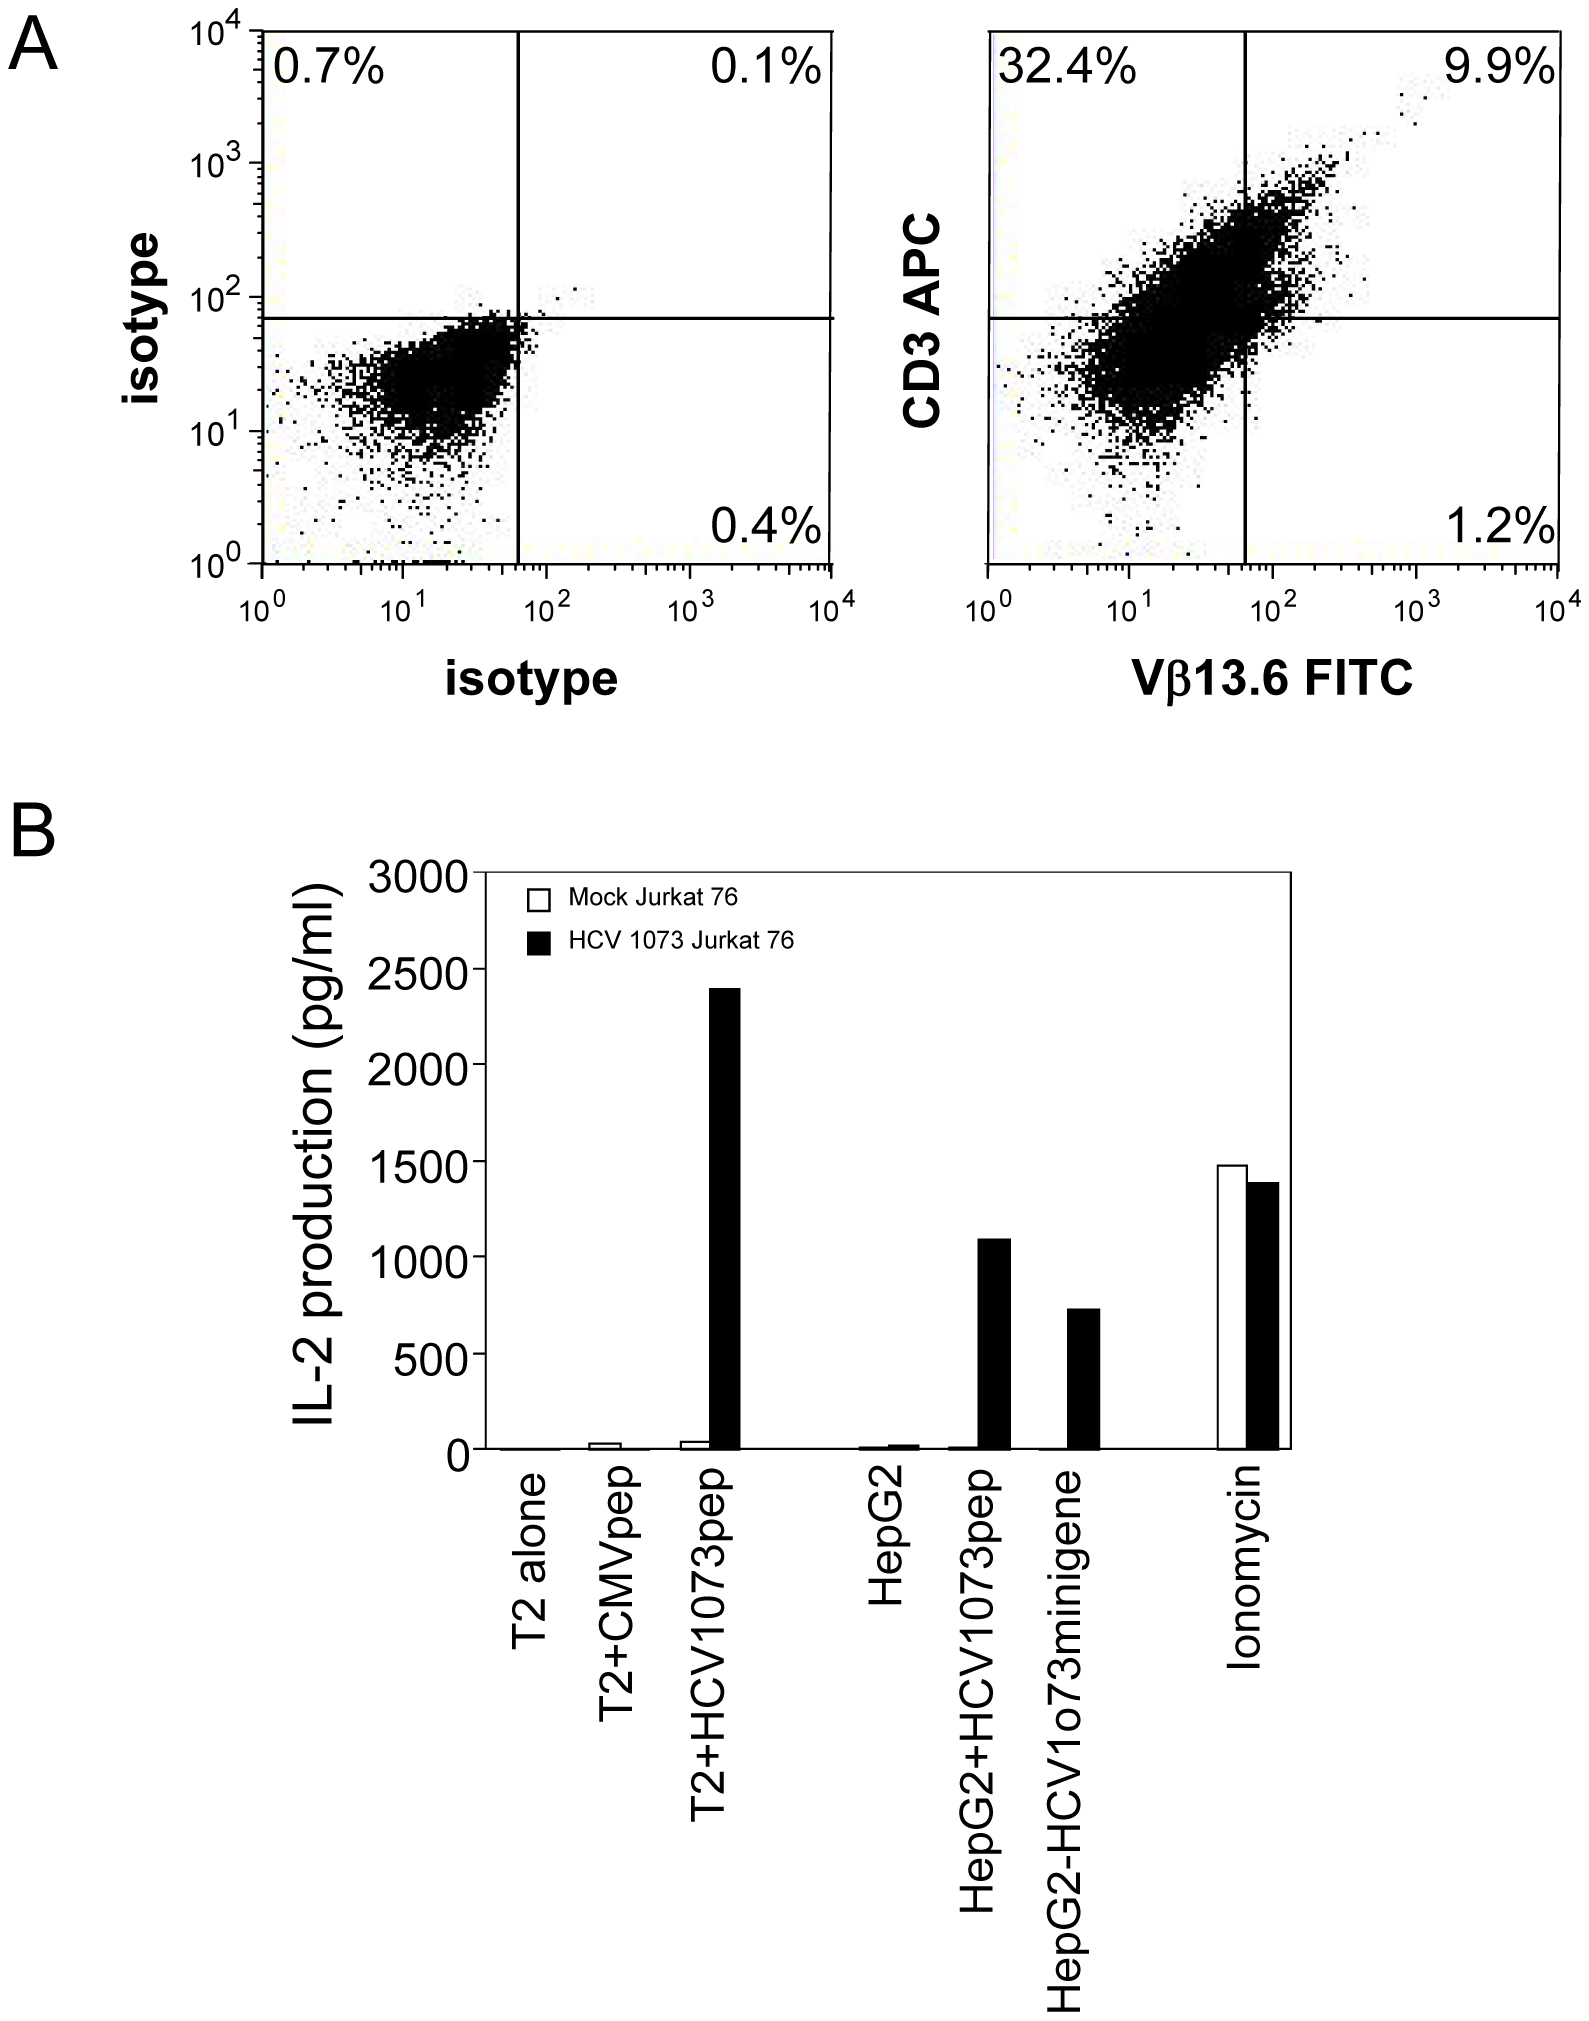 Expression and Function of the HCV TCR in Jurkat 76 cells.